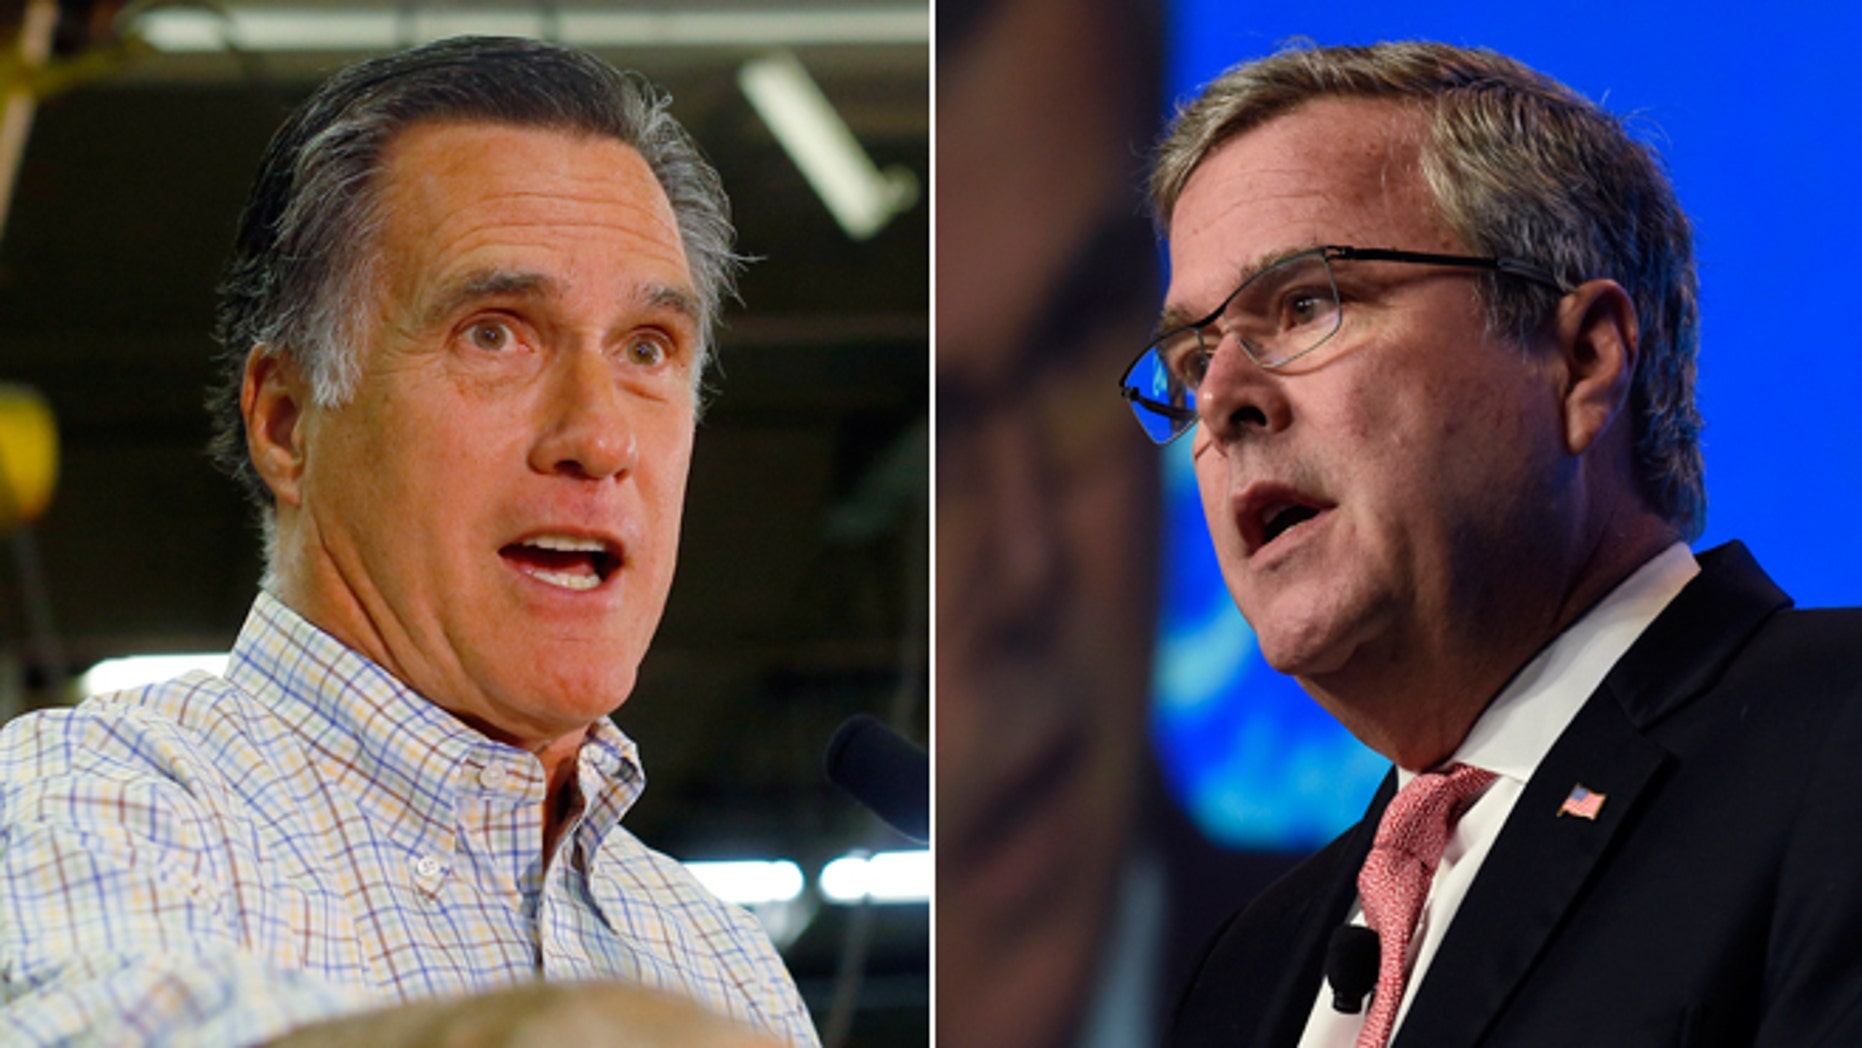 Oct. 15, 2014 file photo of former Republican presidential nominee Mitt Romney in New Hampshire and Nov. 20, 2014 file photo of former Florida Gov. Jeb Bush in Washington.